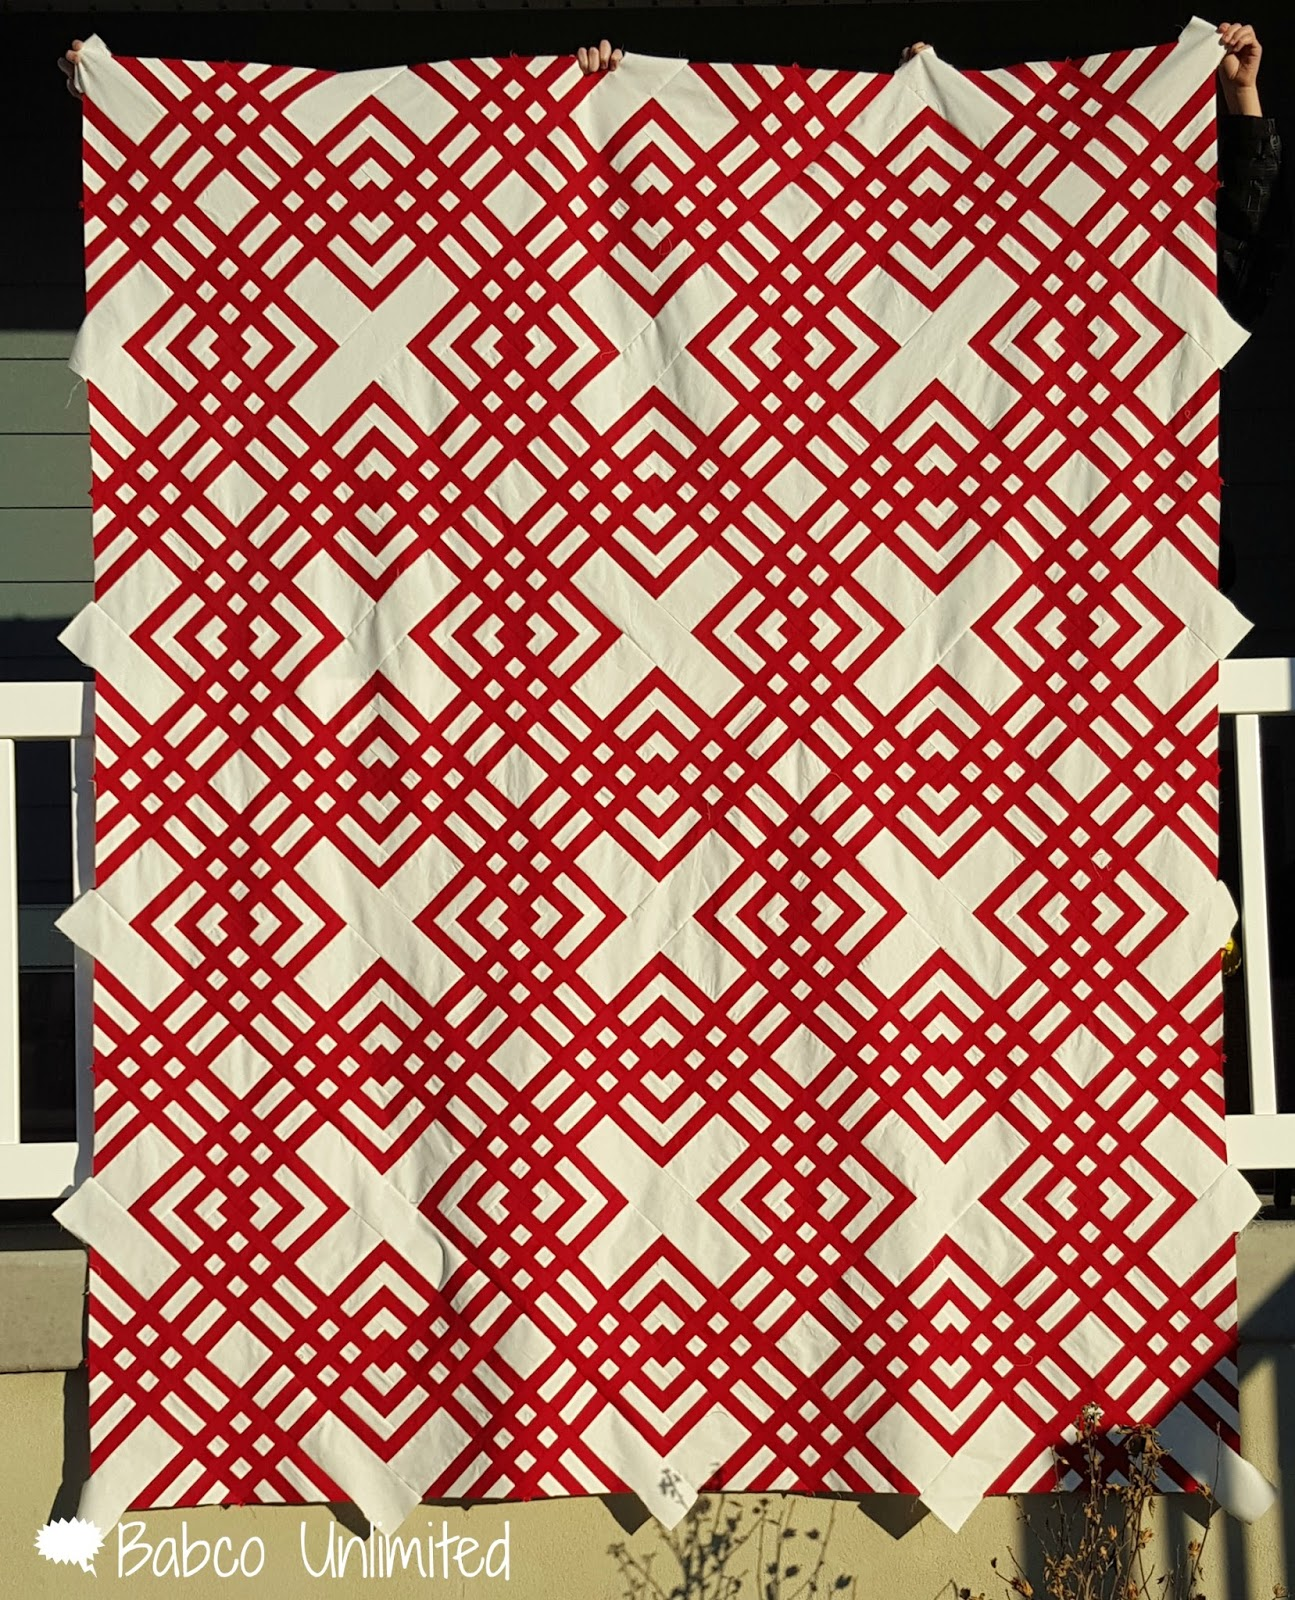 Babco unlimited a year in review for Red door design quilts